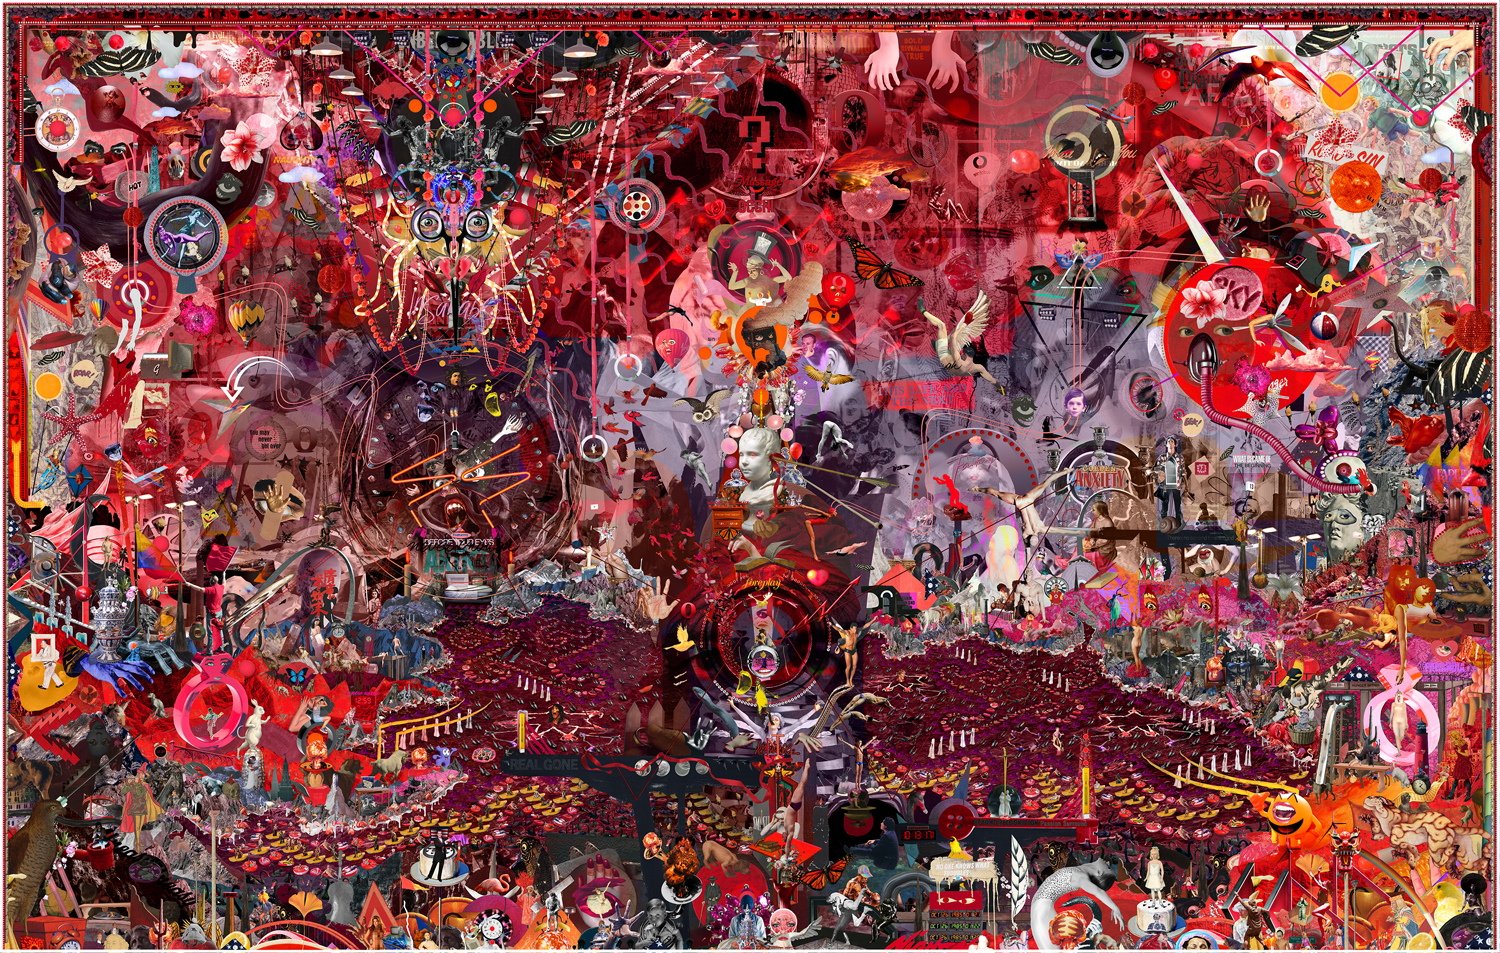 Simmons & Burke,  If Not Summer #3,  2010, c-print & custom audio software, 58 x 90 3/4 inches, Edition of 5, 2 AP